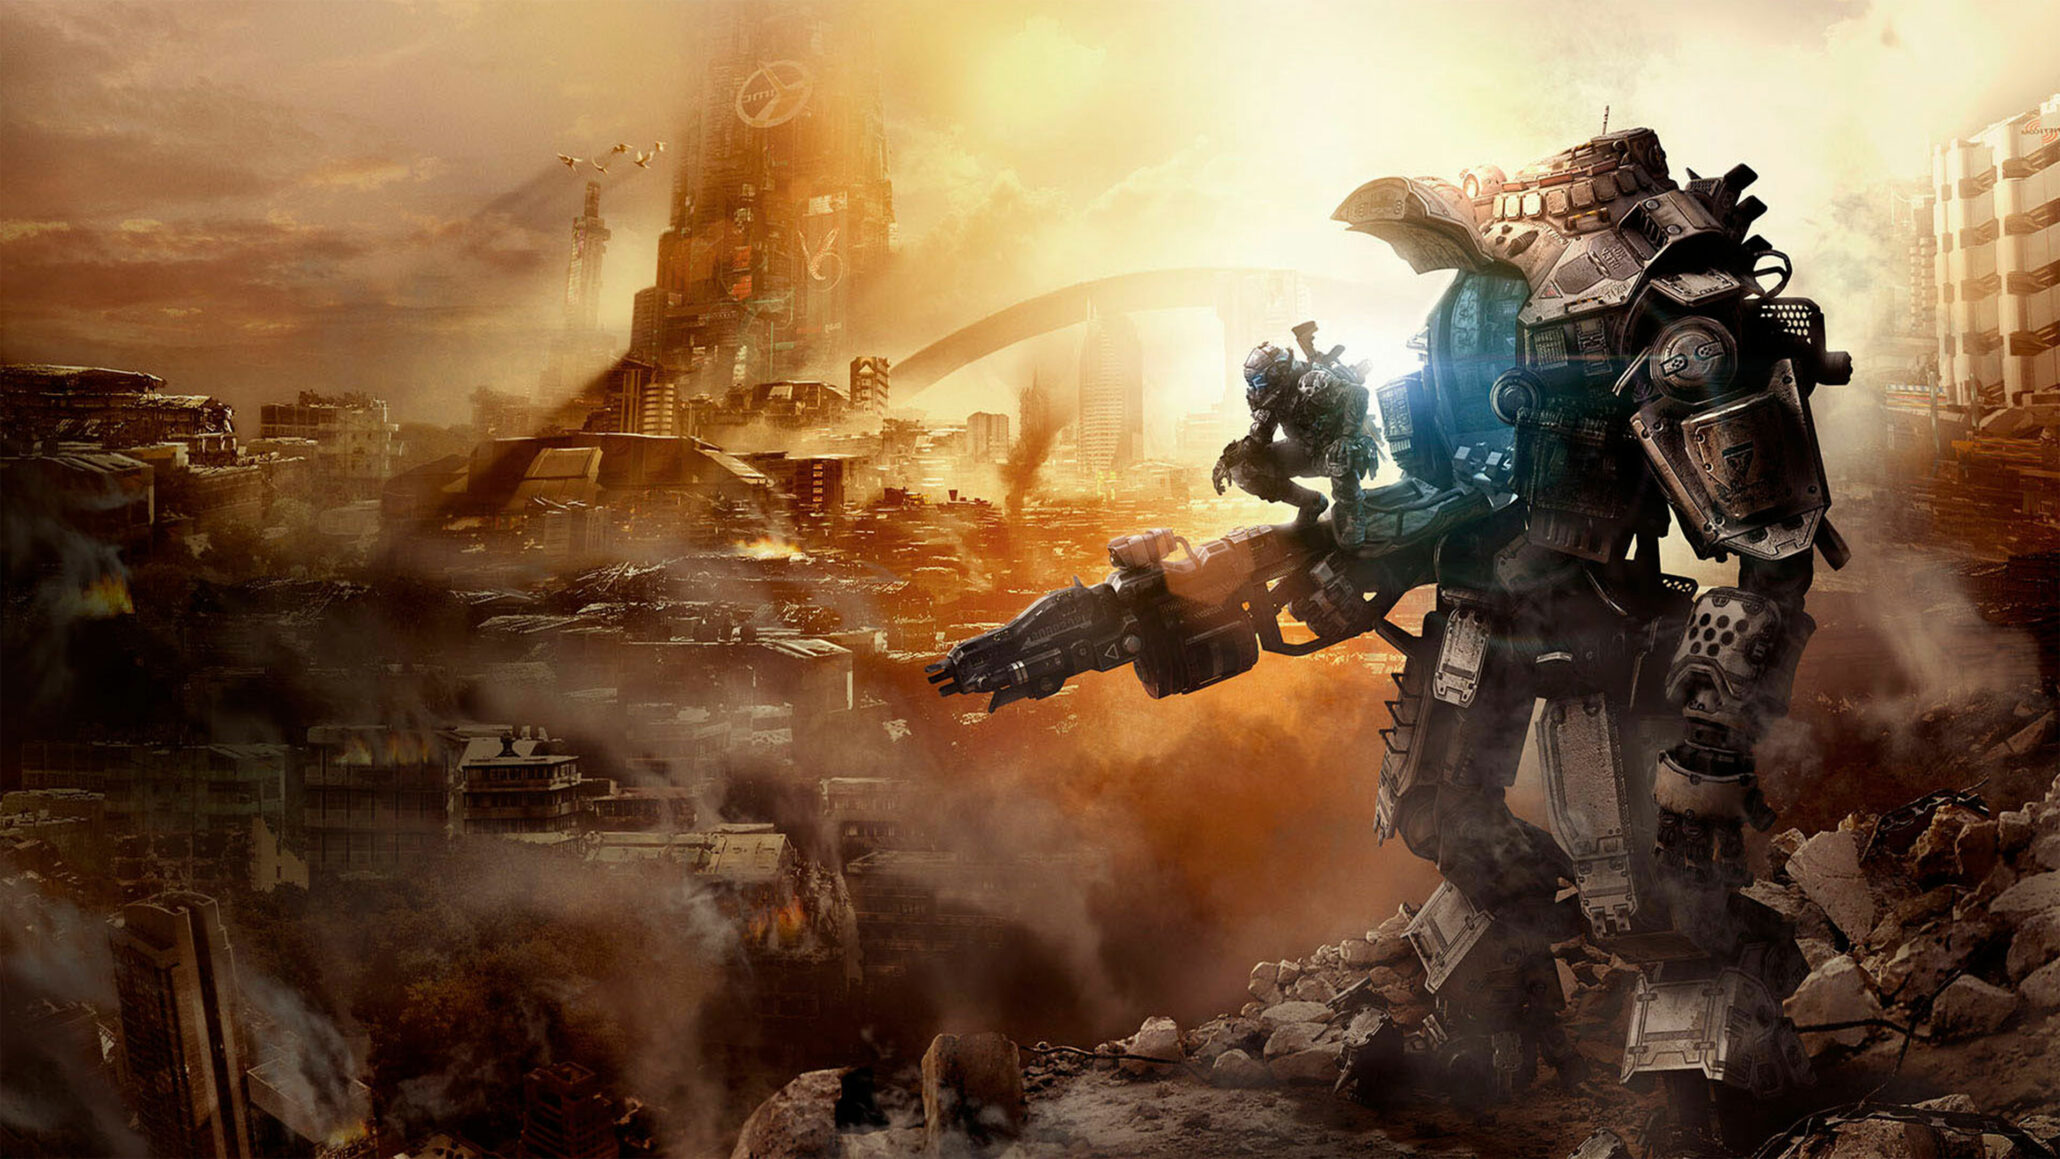 Respawn CEO Explains Why Their Games Feel So Good, Says He'd